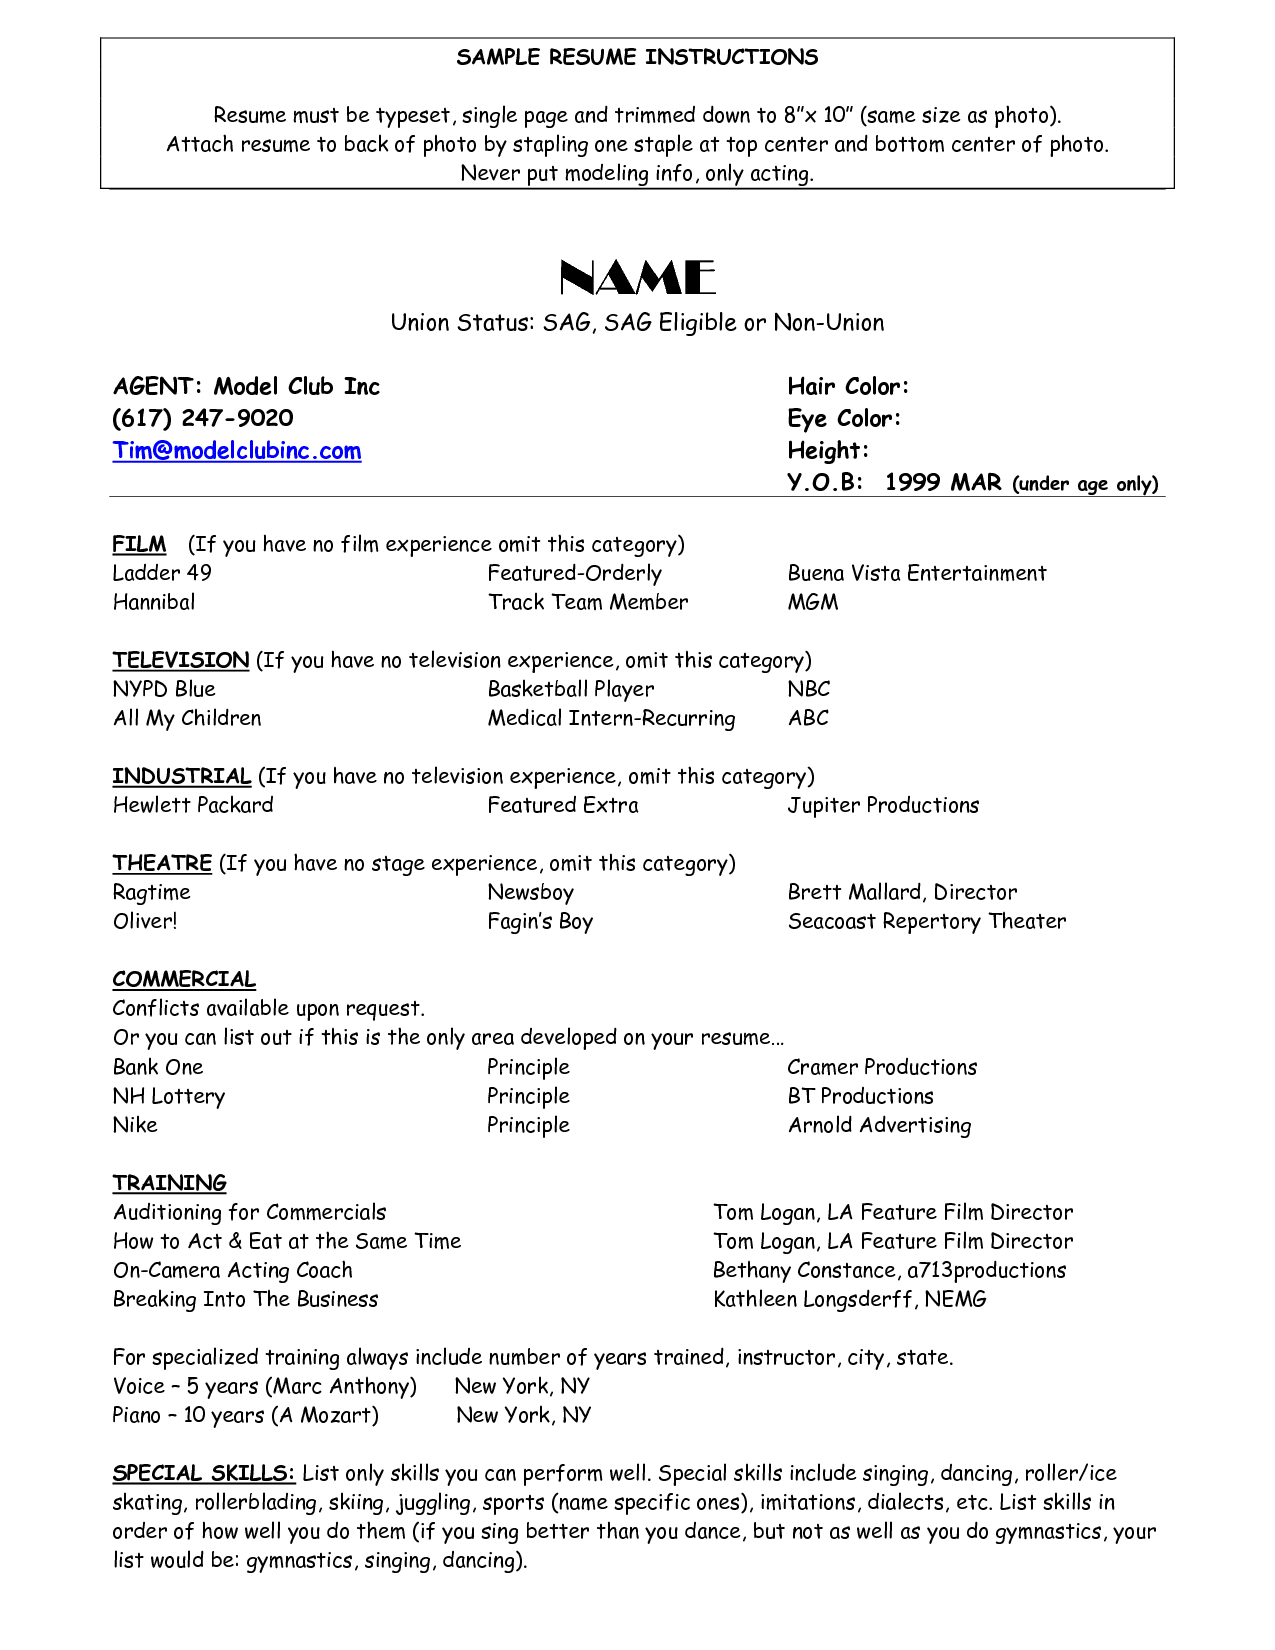 Resume For Child Actor Scope Of Work Template Acting Resume